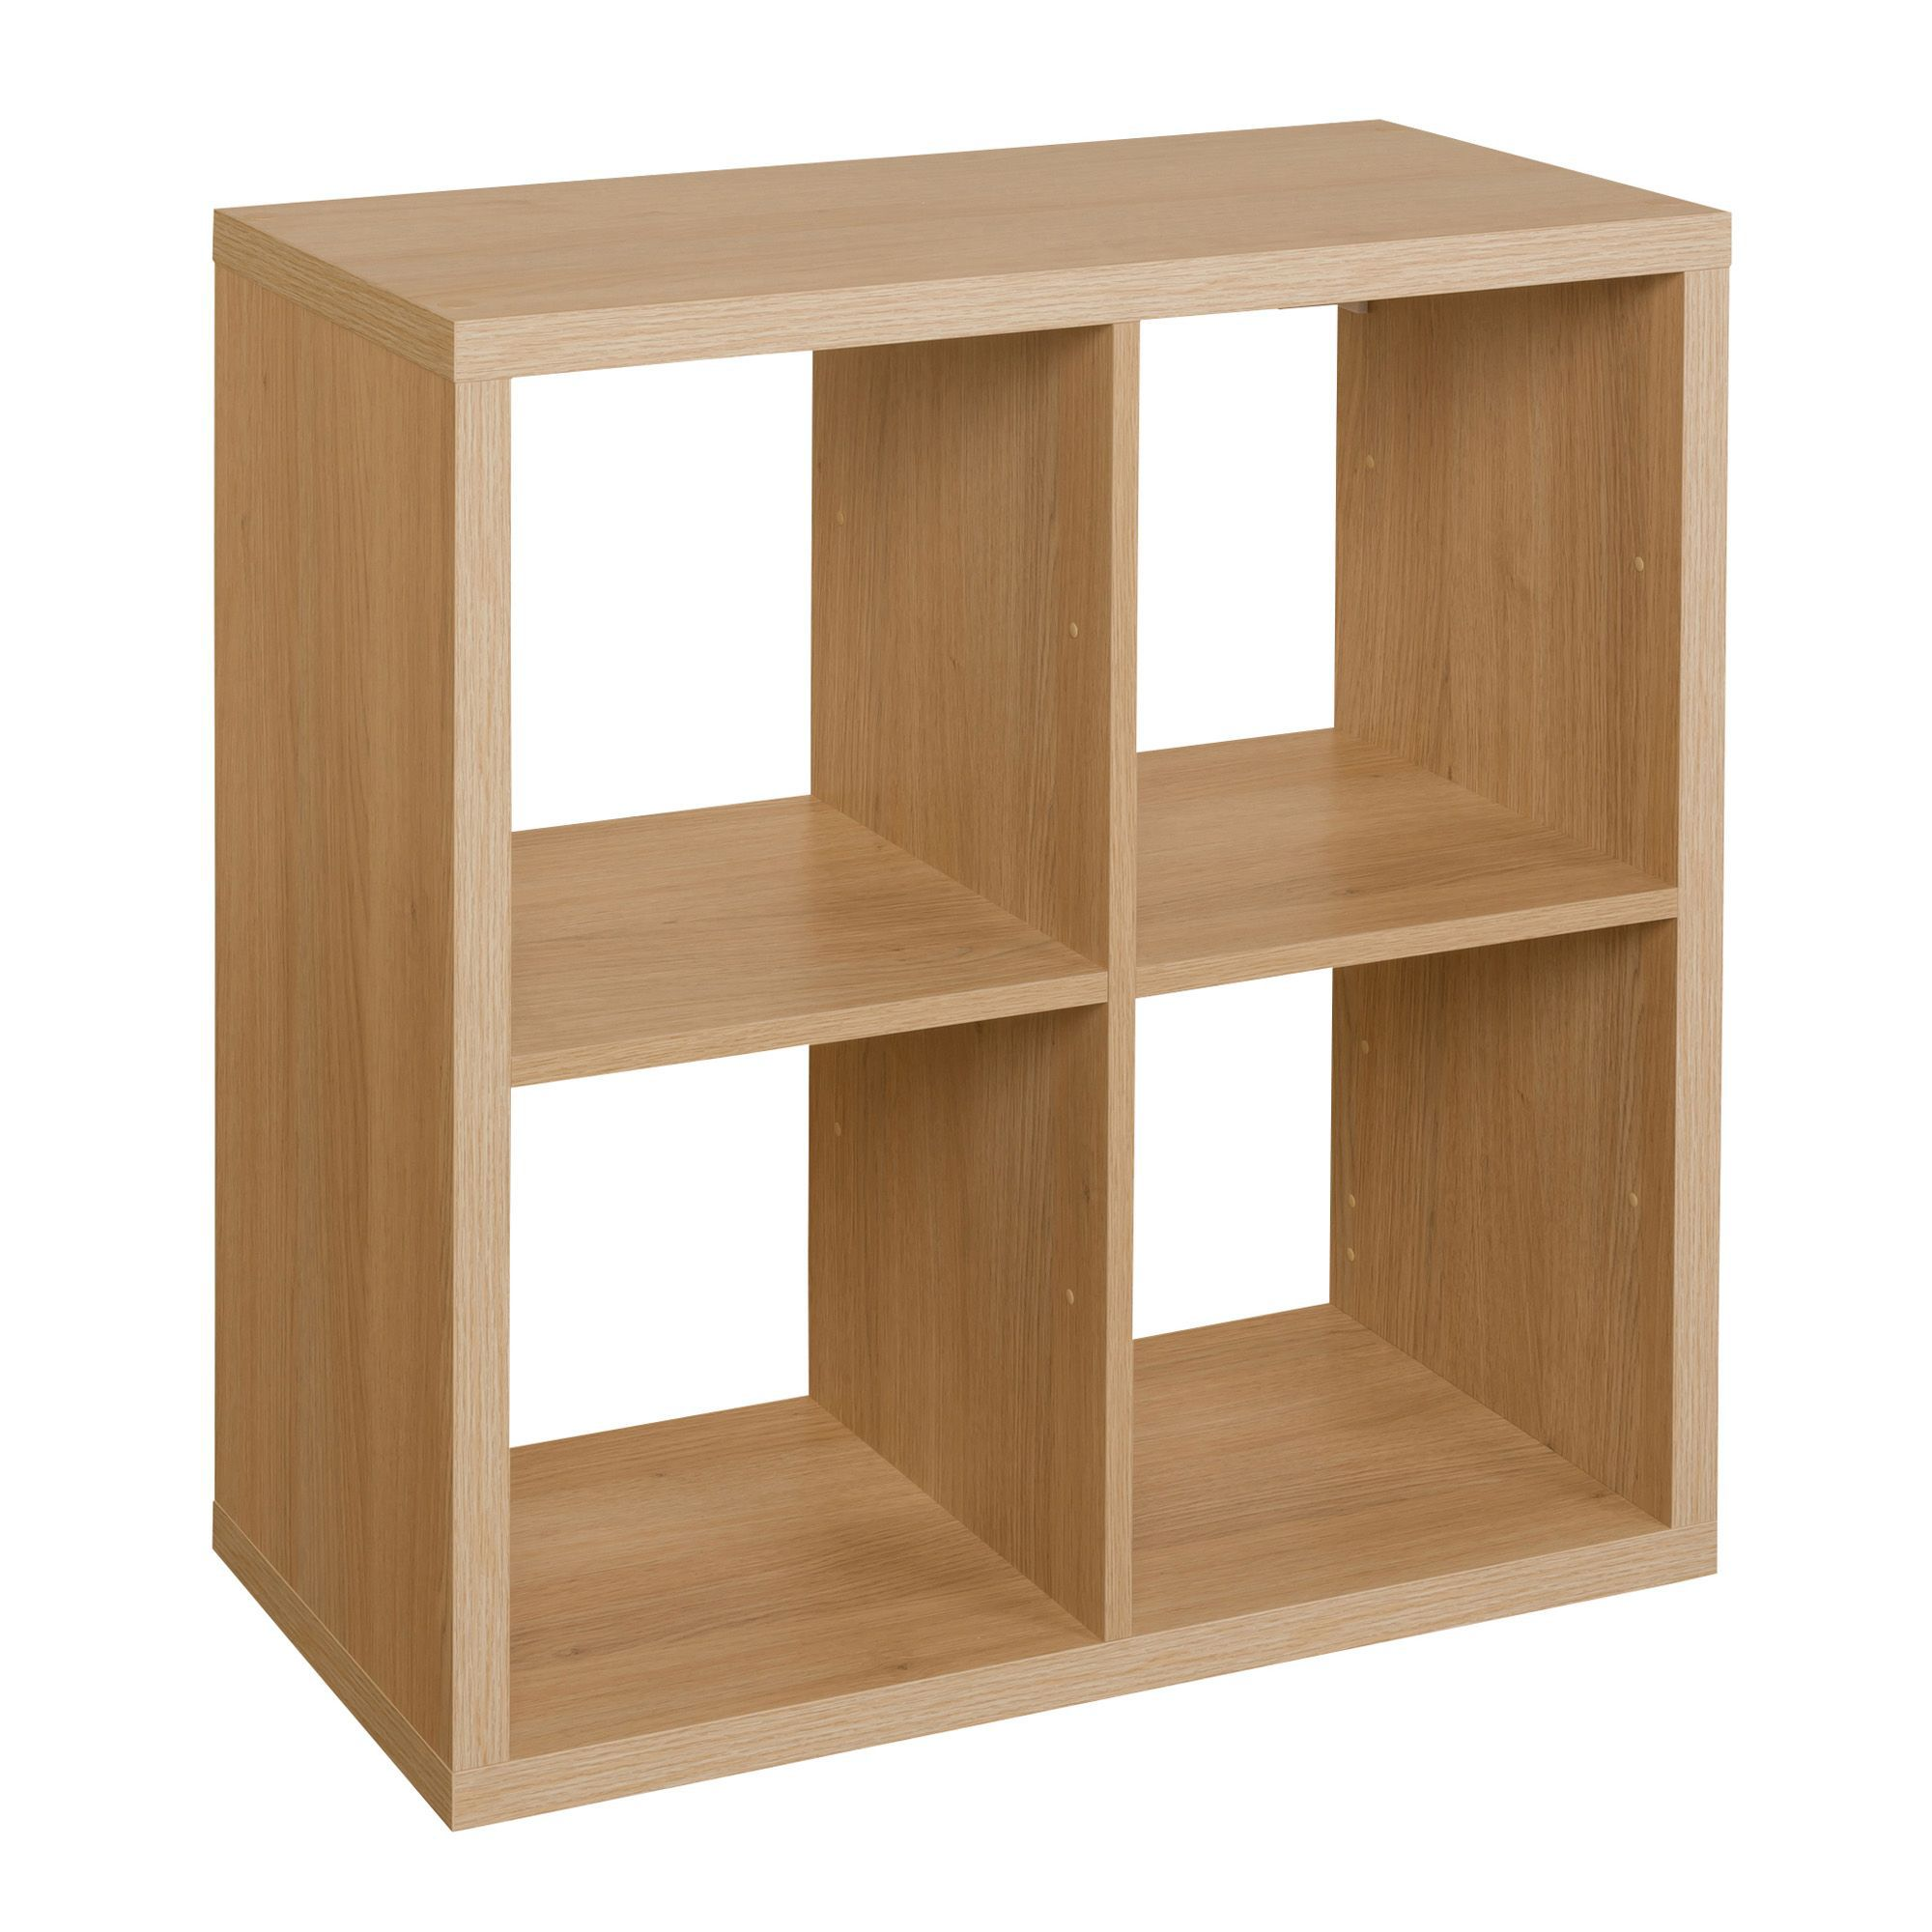 Form Mixxit Natural 4 Cube Shelving Unit H 740mm W 740mm